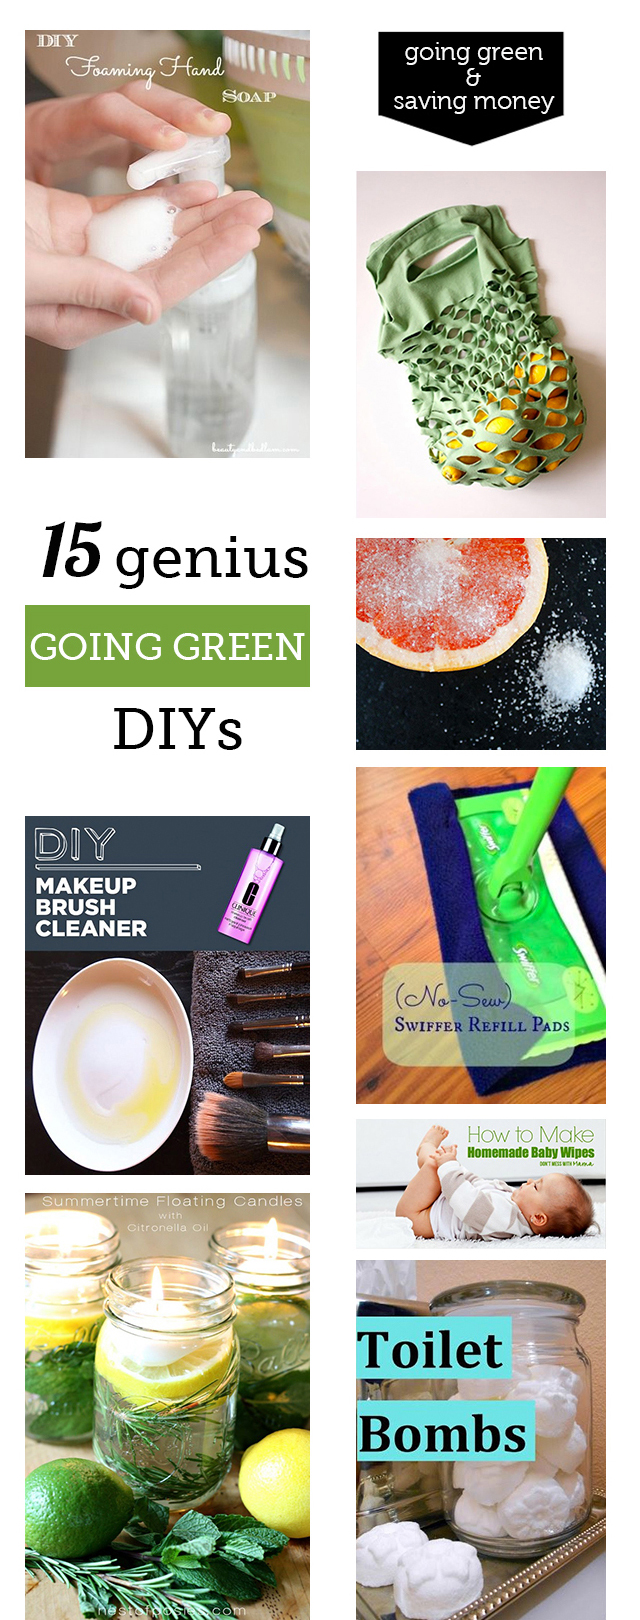 diy green cleaning and beauty projects